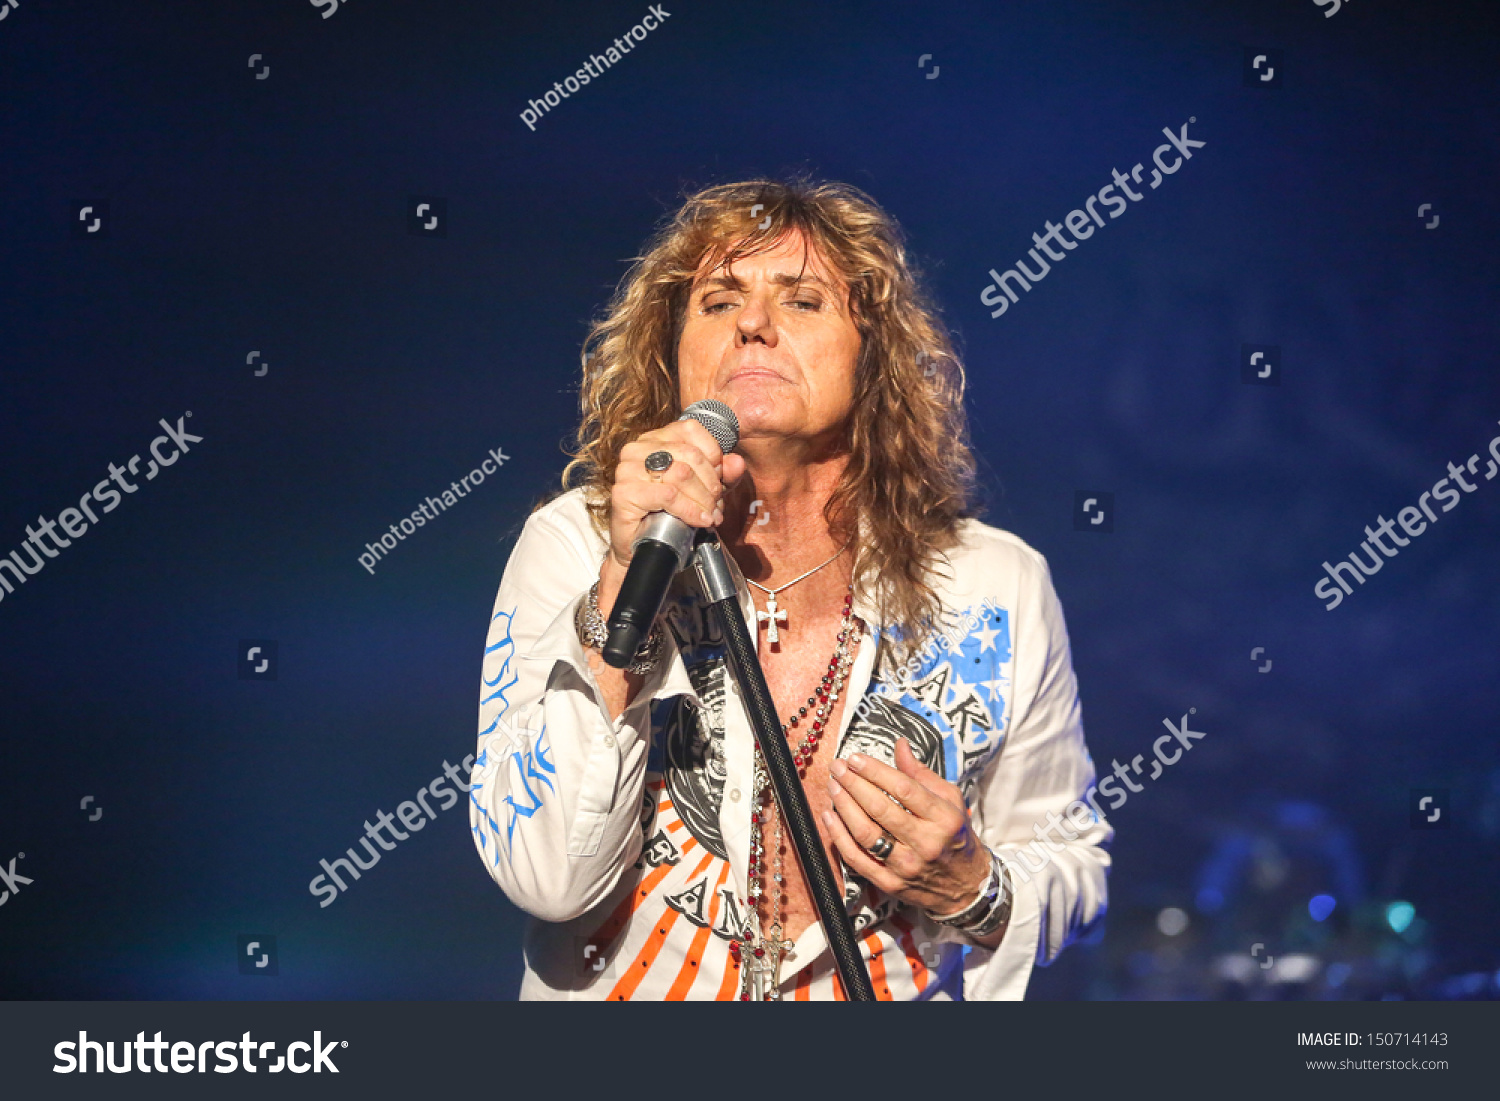 Whitesnake Lead Singer Raleigh Nc July 31 Lead Singer David Coverdale And The Classic